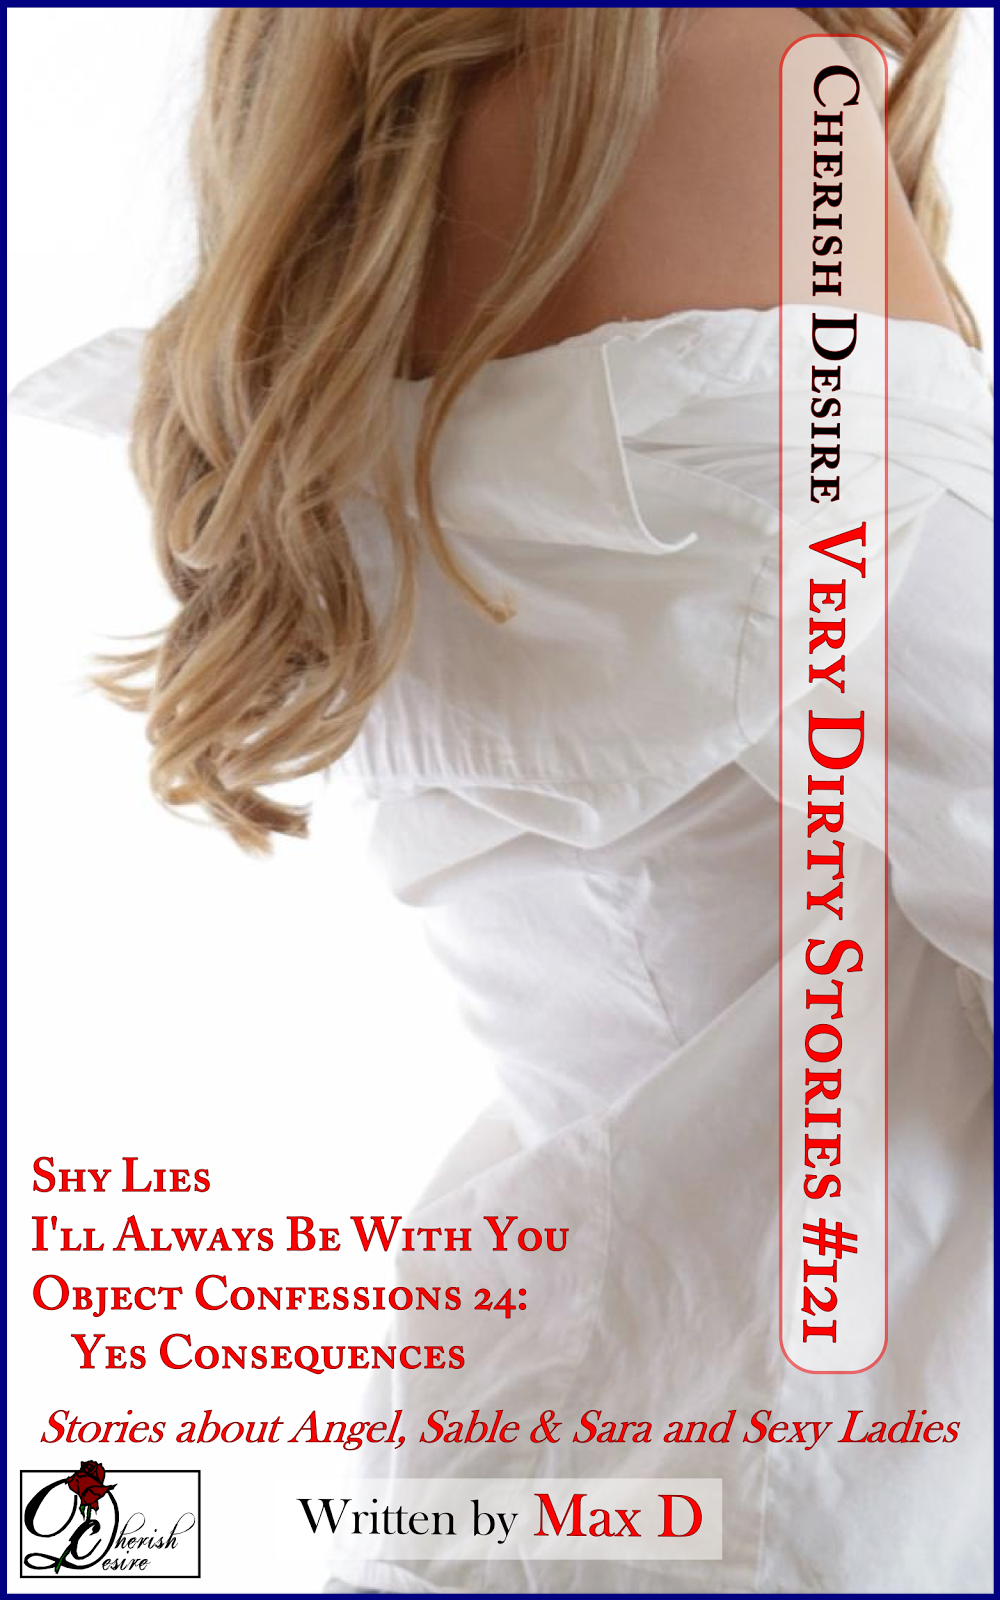 Cherish Desire: Very Dirty Stories #121, Max D, erotica